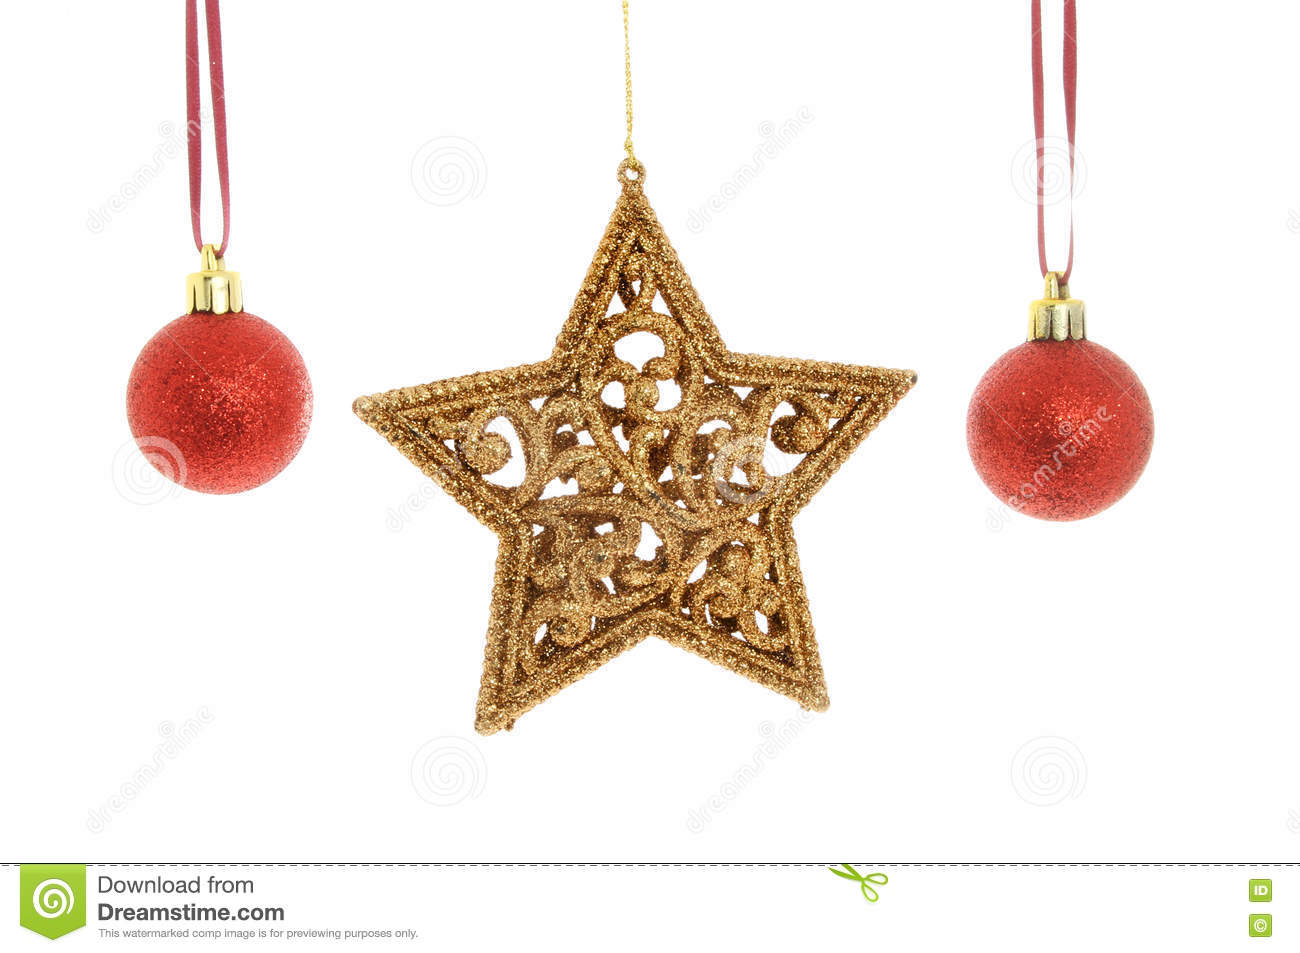 183b8c79a430 Gold star red baubles stock photo. Image of xmas, christmas - 79940220